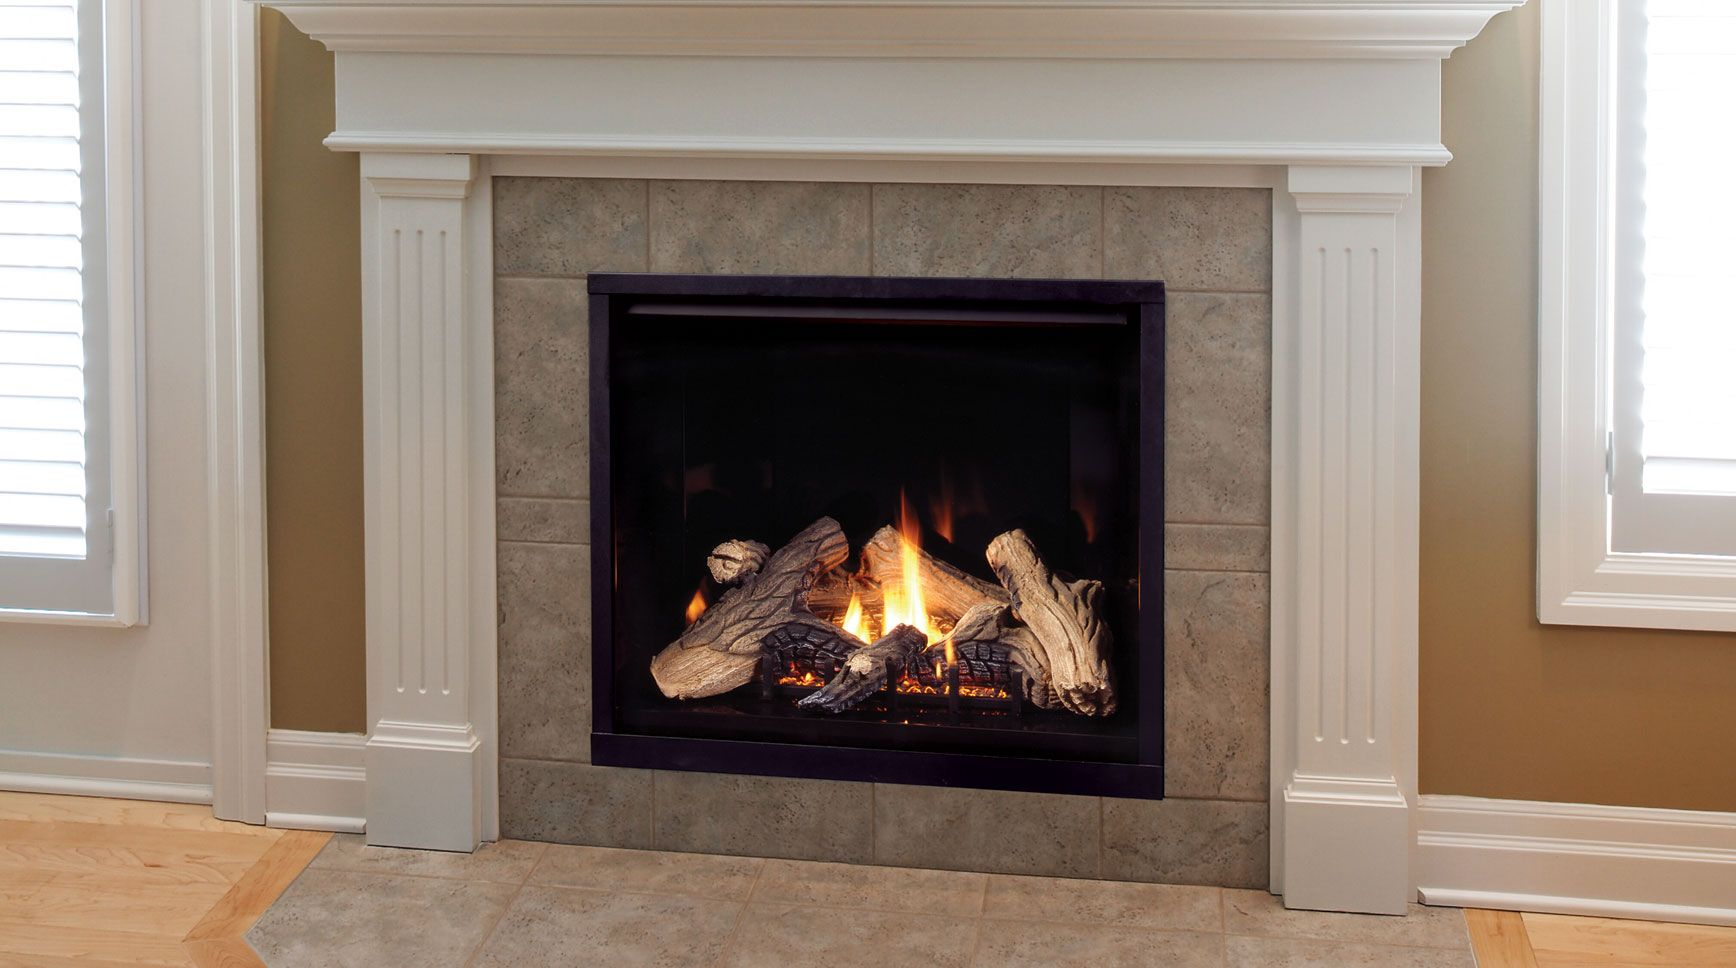 Gas Fireplaces Come In Vented Or Non Vented Systems. Not Sure Of The  Difference